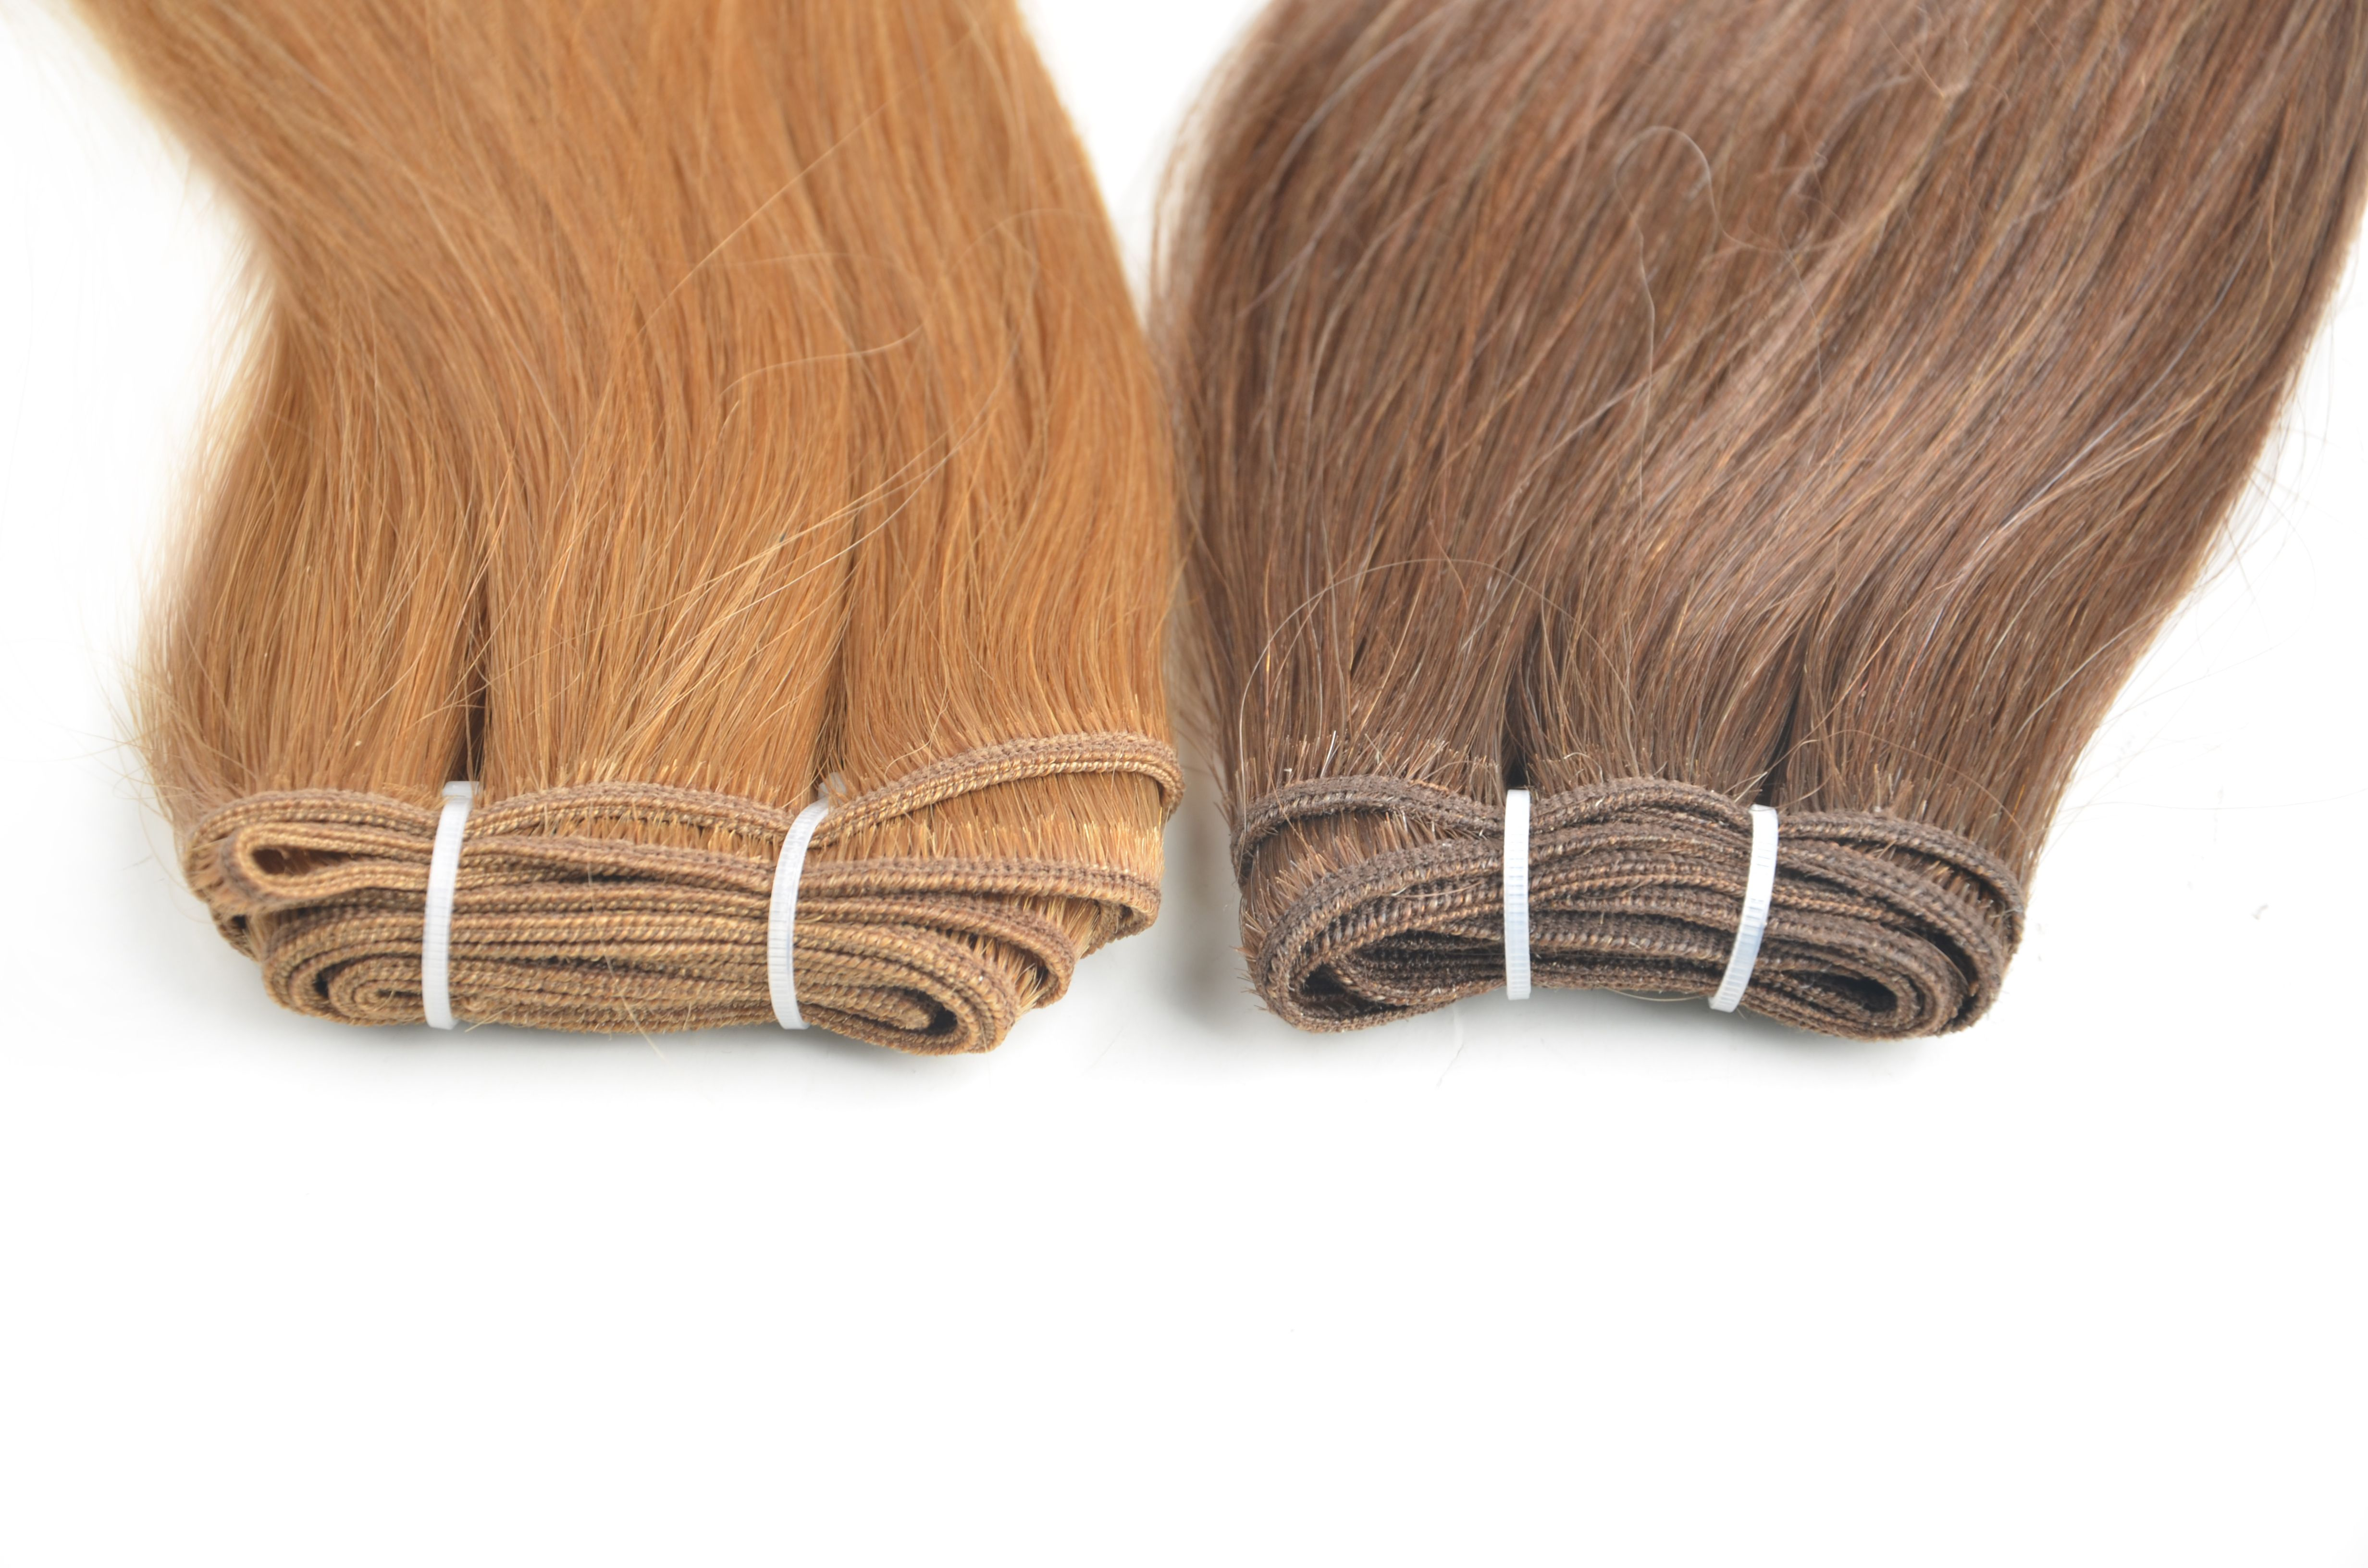 Hair Weft Is Simply Hair That Is Sewn Together In A Continuous Strip